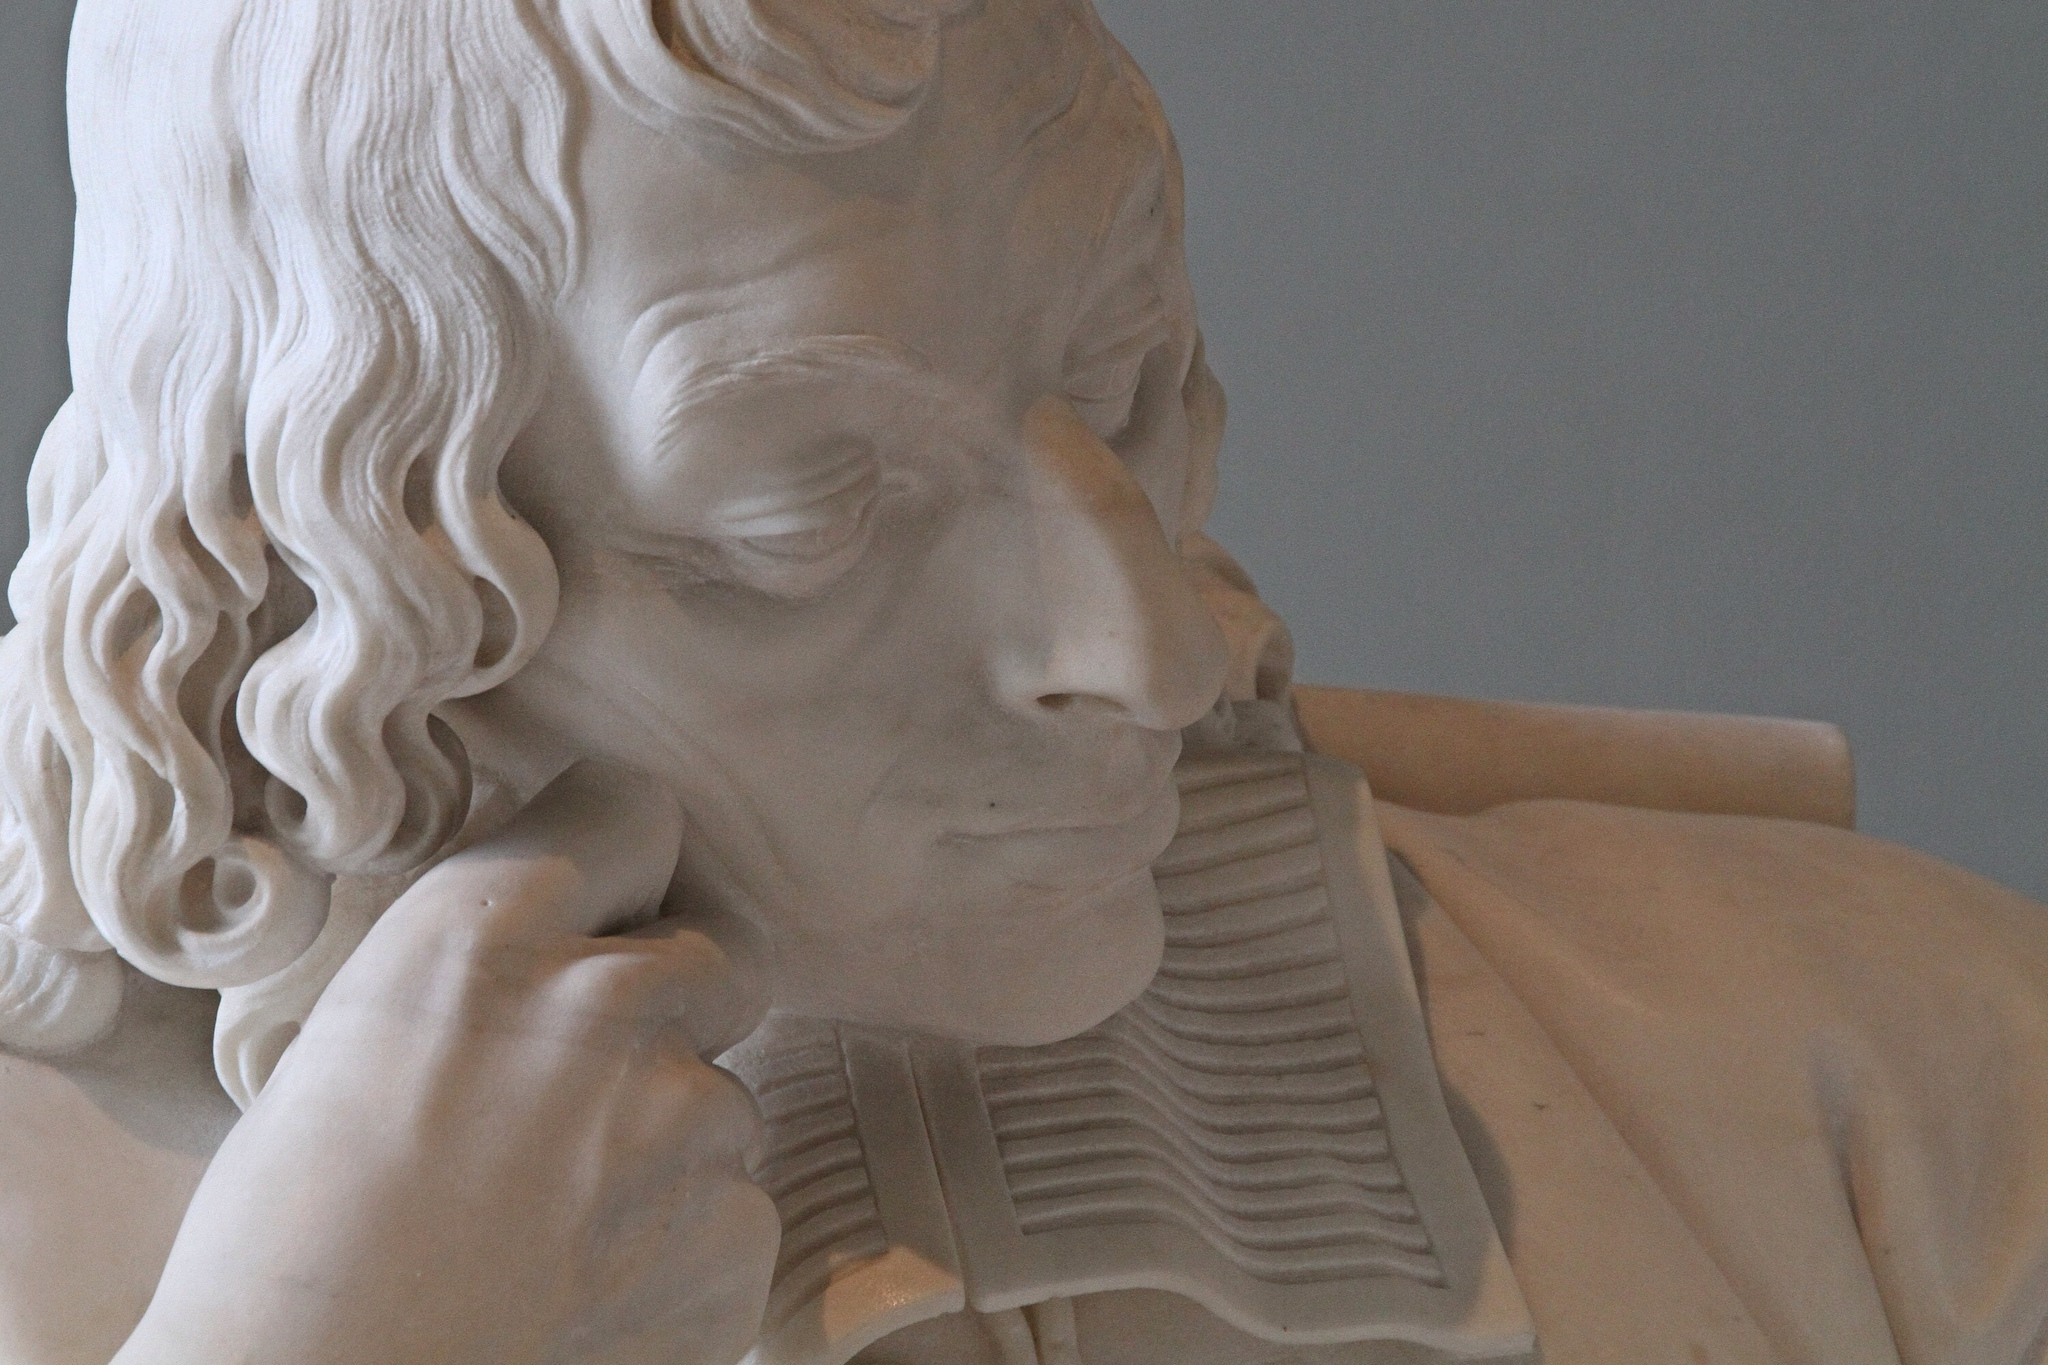 A sculpture of Blaise Pascal from the Musée du Louvre, Paris.